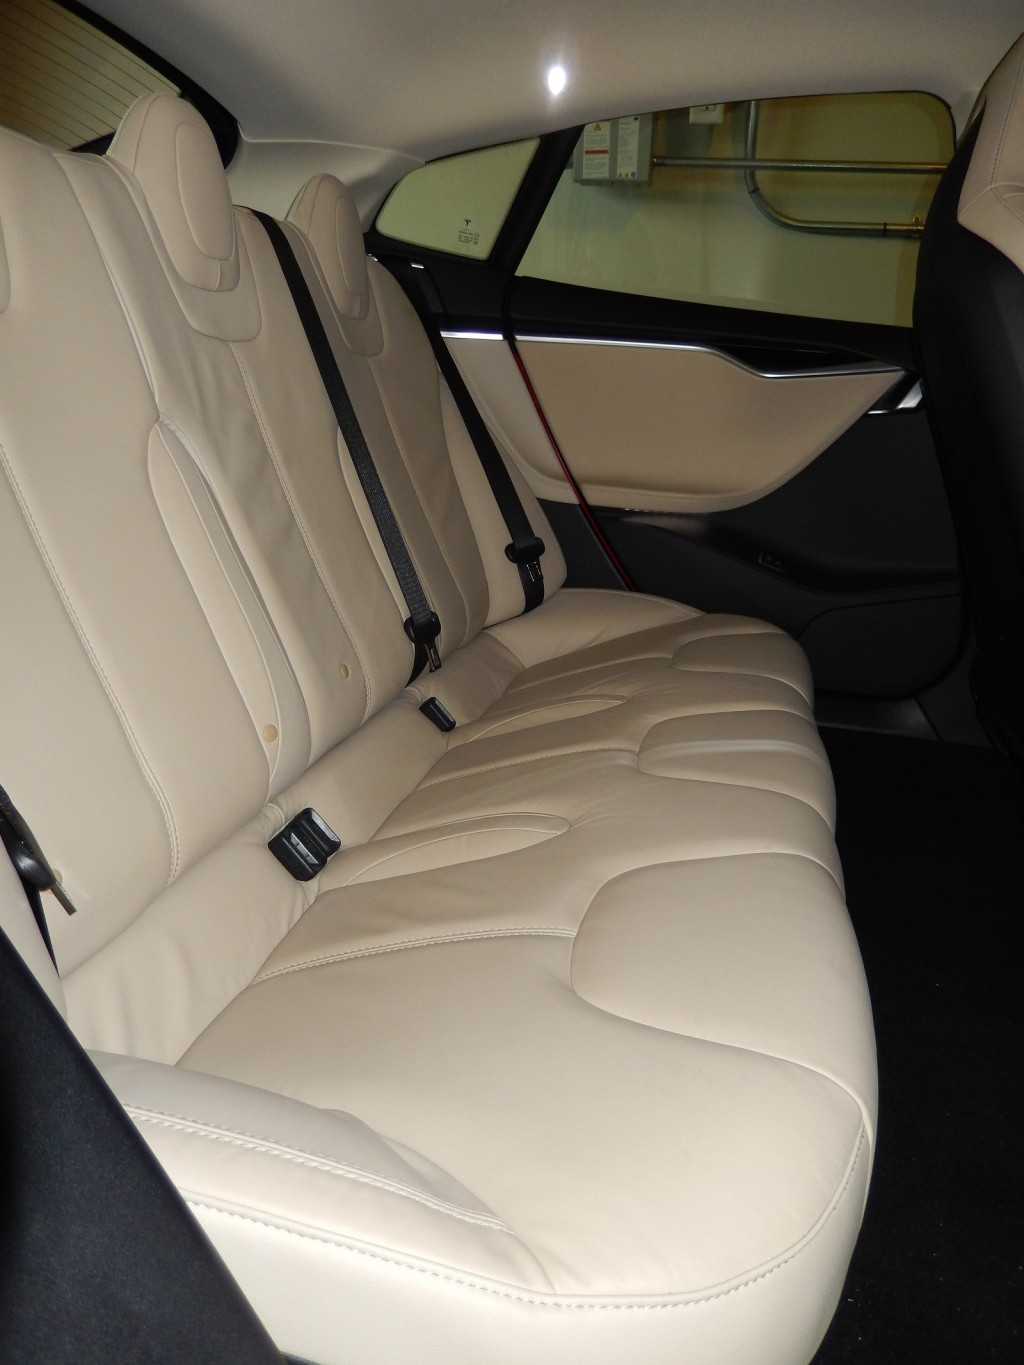 image 2013 tesla model s old rear seat design photo owner george parrott size 1024 x 1365. Black Bedroom Furniture Sets. Home Design Ideas